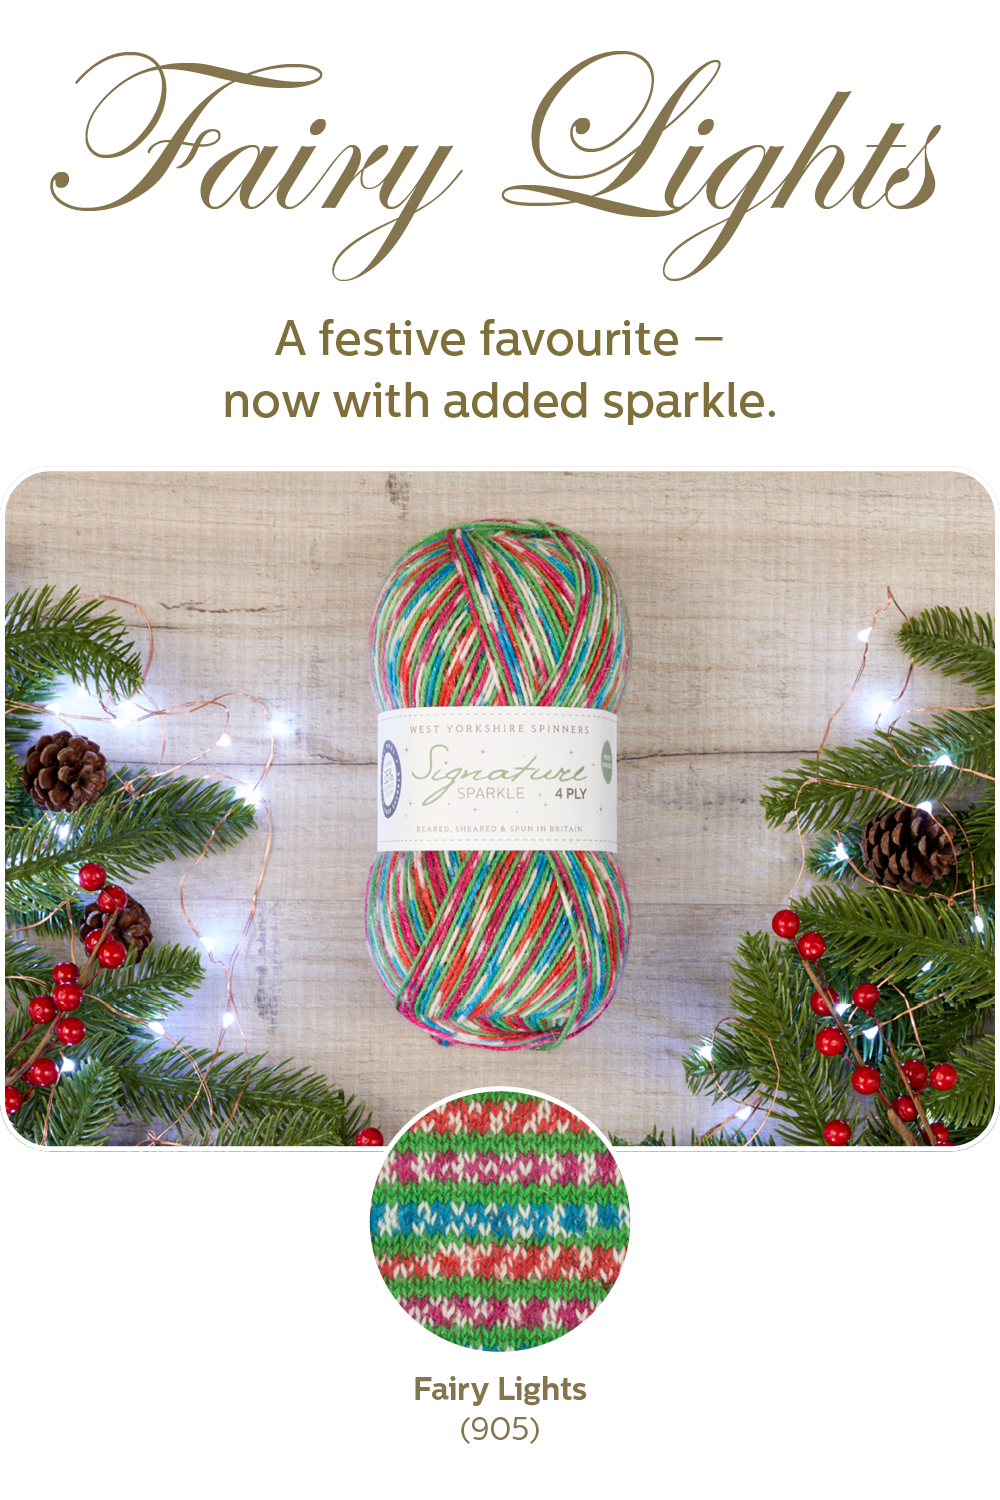 Signature 4-ply sparkle in Fairy Lights from West Yorkshire Spinners